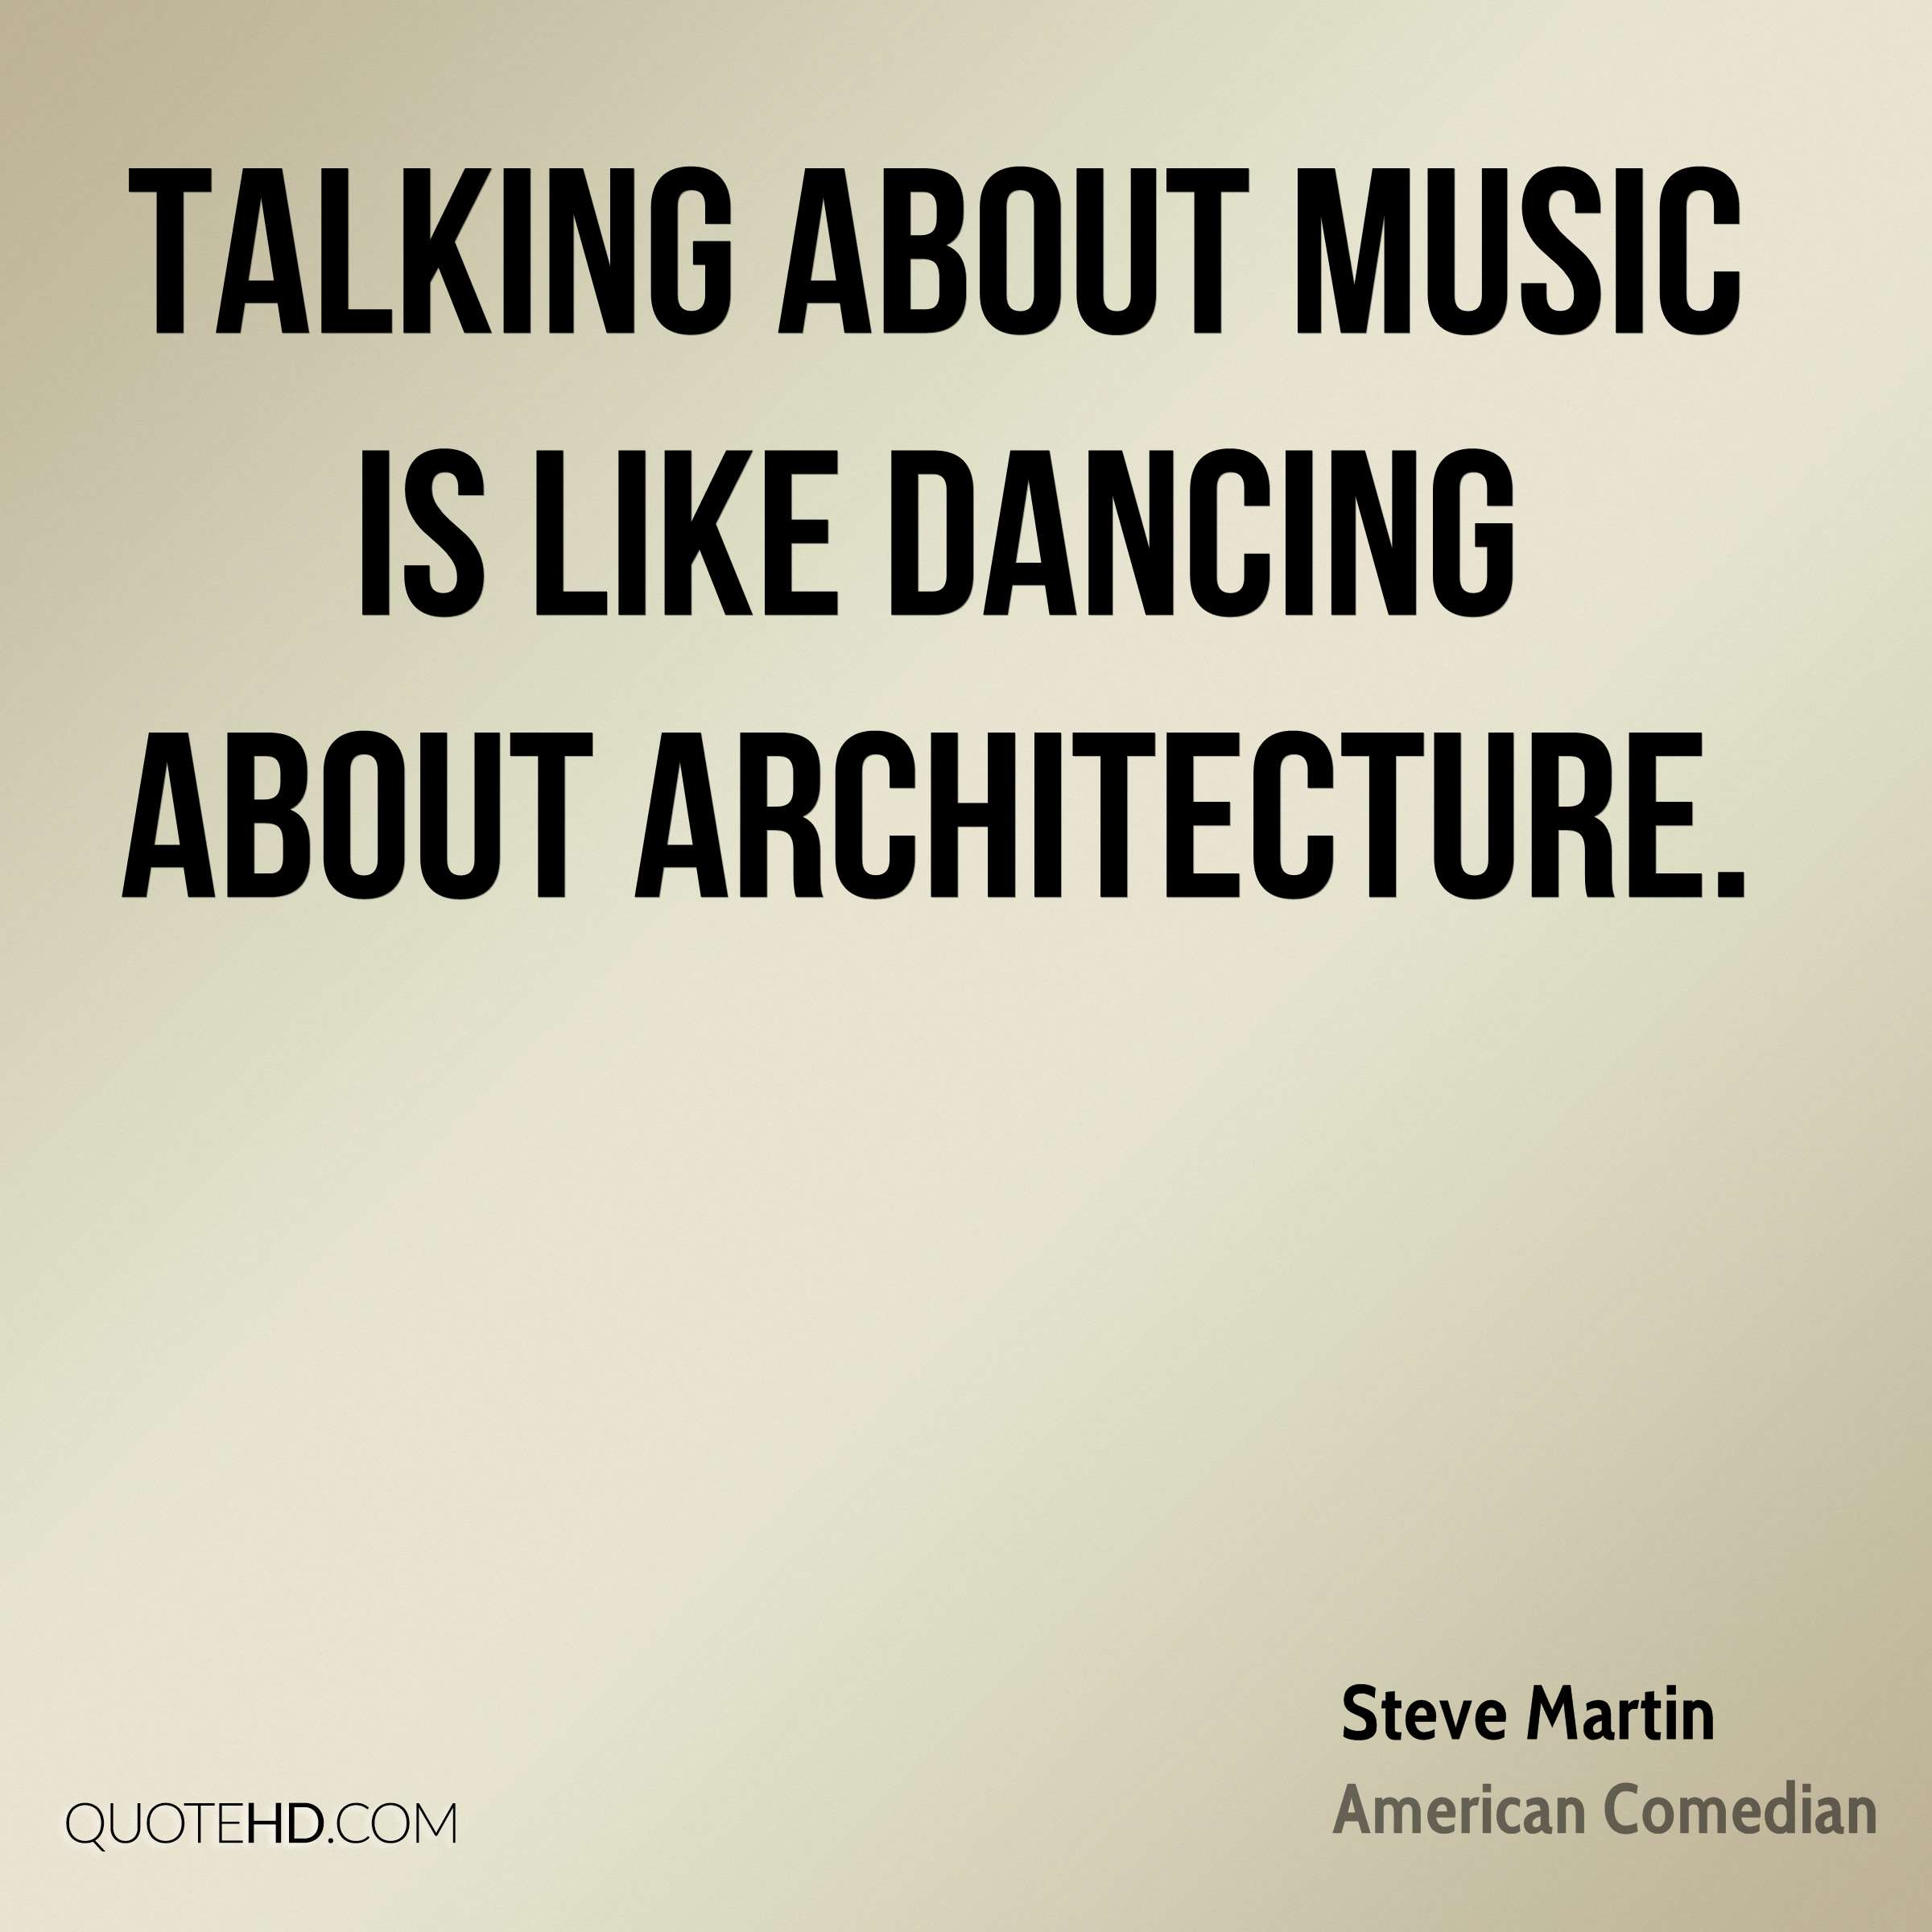 Talking about music is like dancing about architecture.